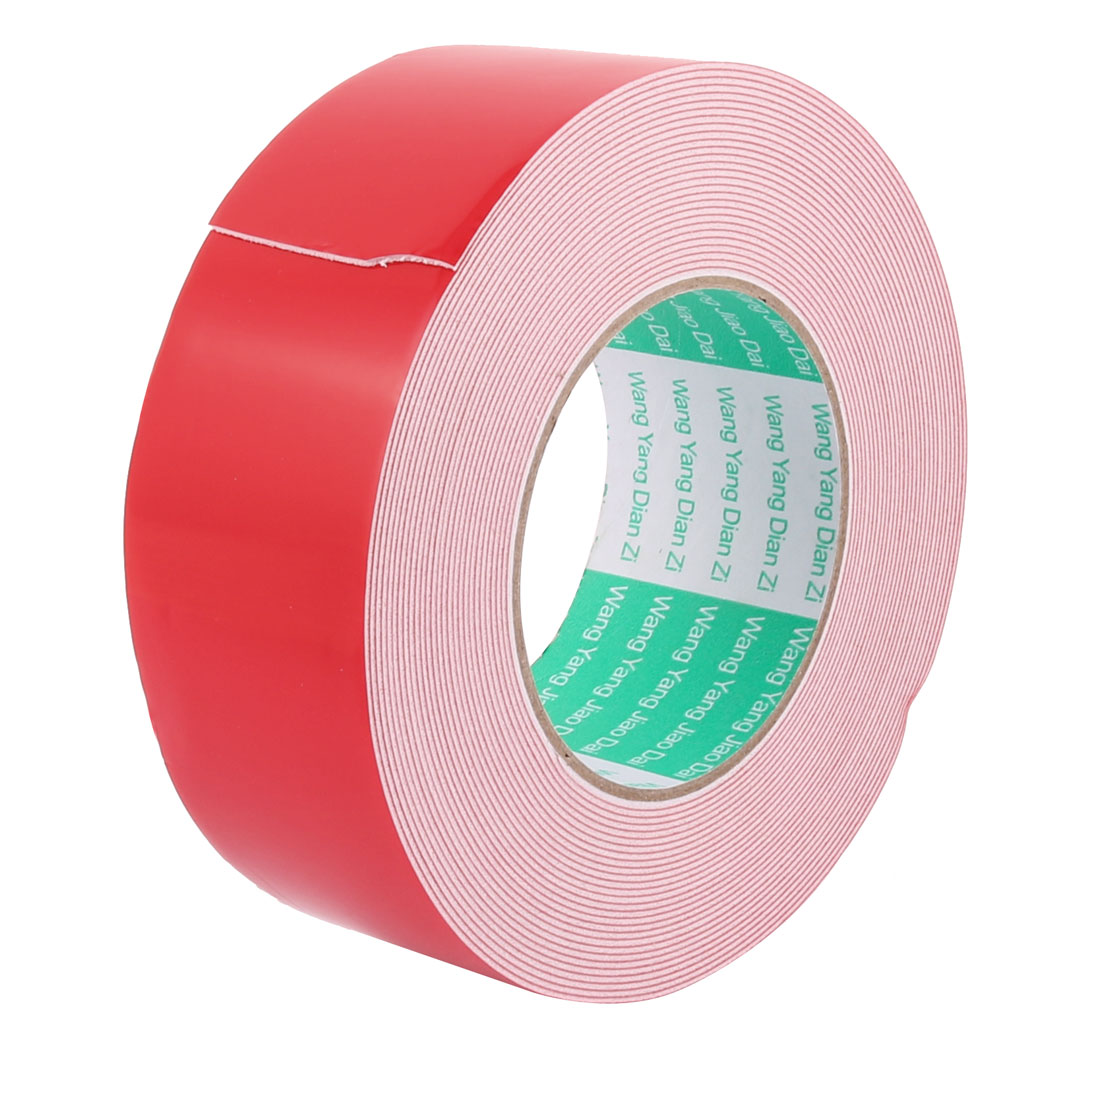 Unique Bargains 5CM Width 10M Length 1MM Thick White Double Sided Waterproof Sponge Tape for Car